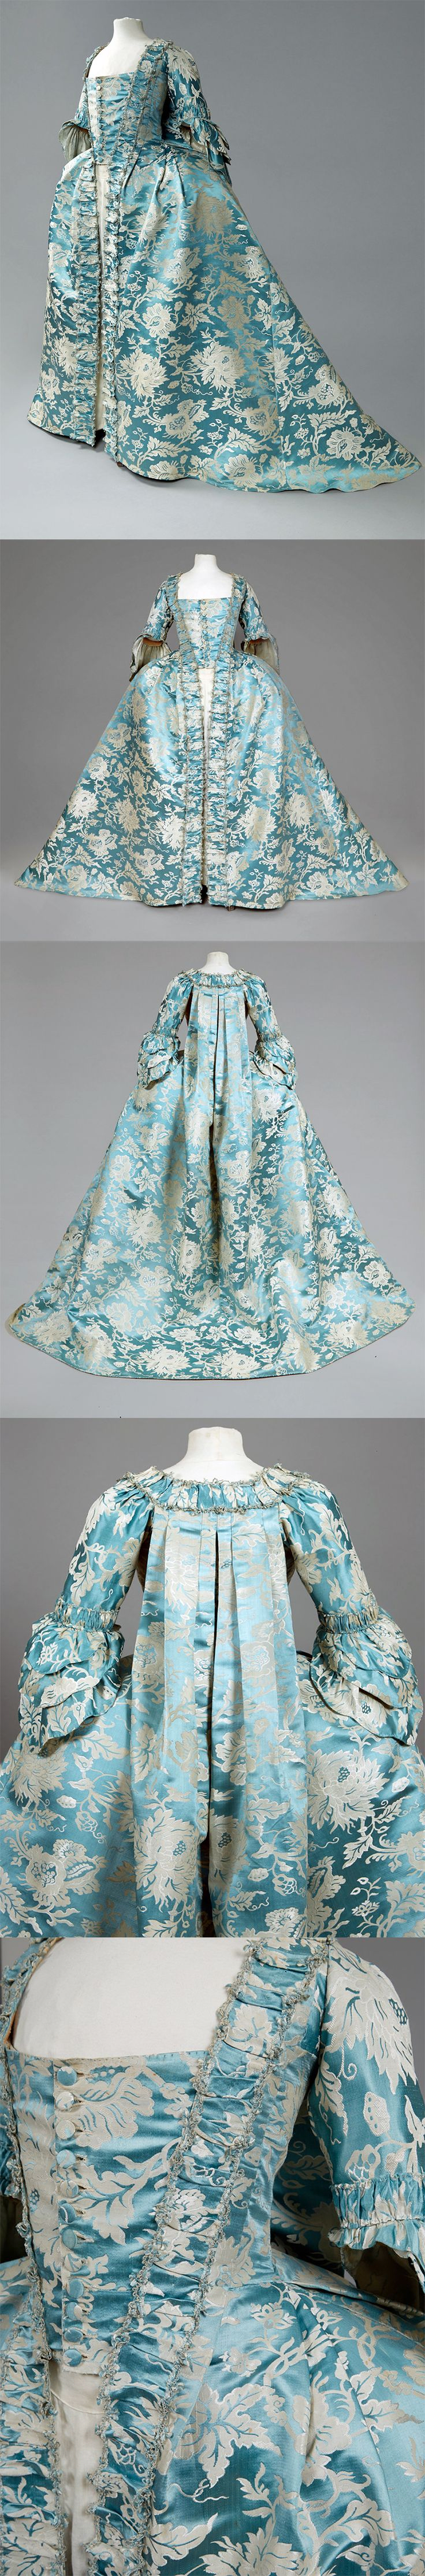 Robe a la Francaise, mid 18thC, Open gown of Chinese cerulean blue silk woven with a large-scale white and platinum floral, having elbow length sleeve with lobed triple cuff gathered into a ruched band, square neckline, bodice front panel with self buttons, trimmed with furbelows edged in silk fly braid, sacque back, pleated skirt side panels with pocket slits, back lacing bodice lining in various cottons, the front printed in a red windowpane. | Whitaker Auctions via SmugMug